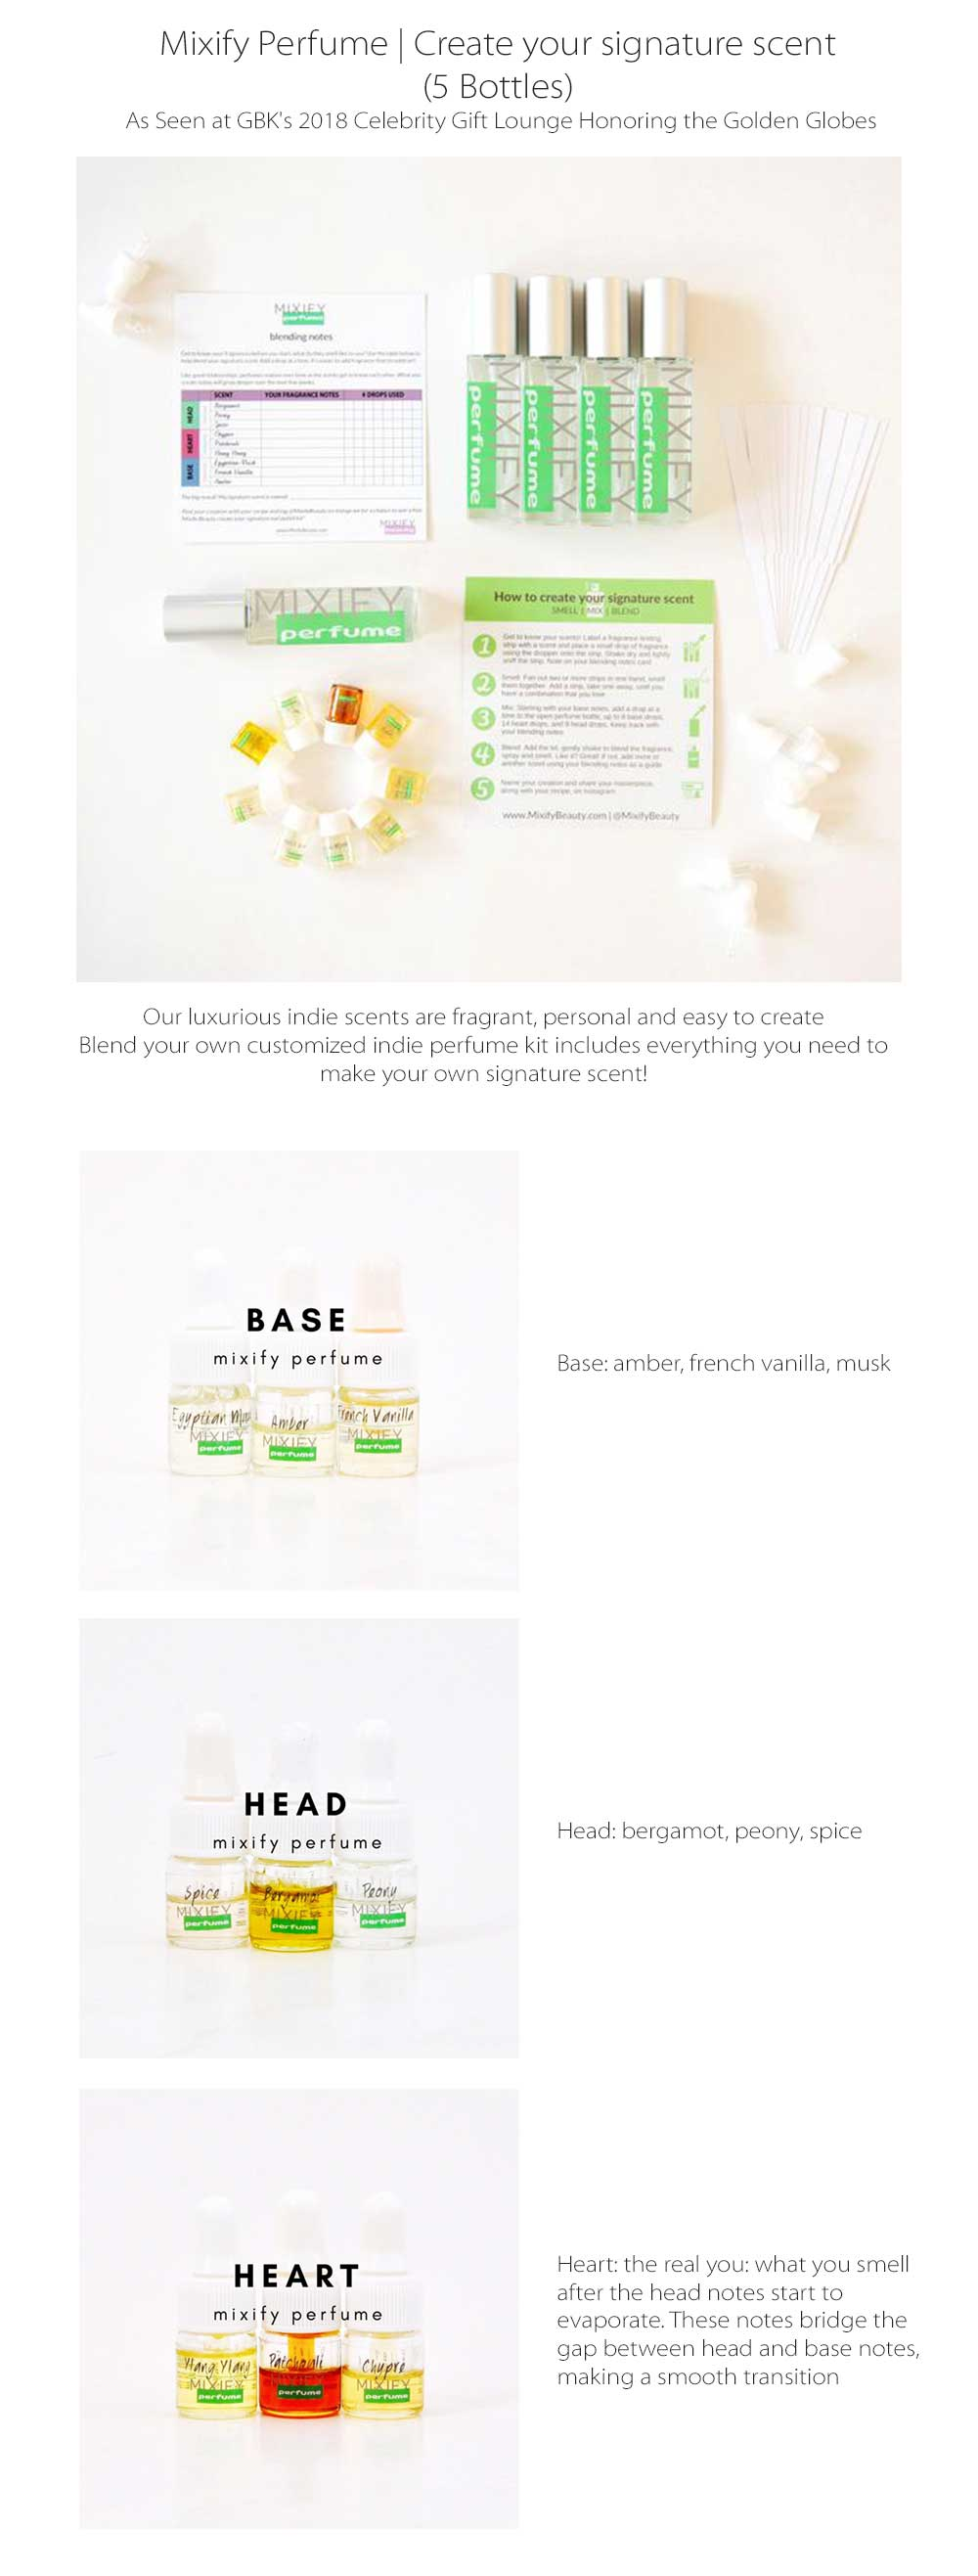 Mixify Perfume Create Your Signature Scent